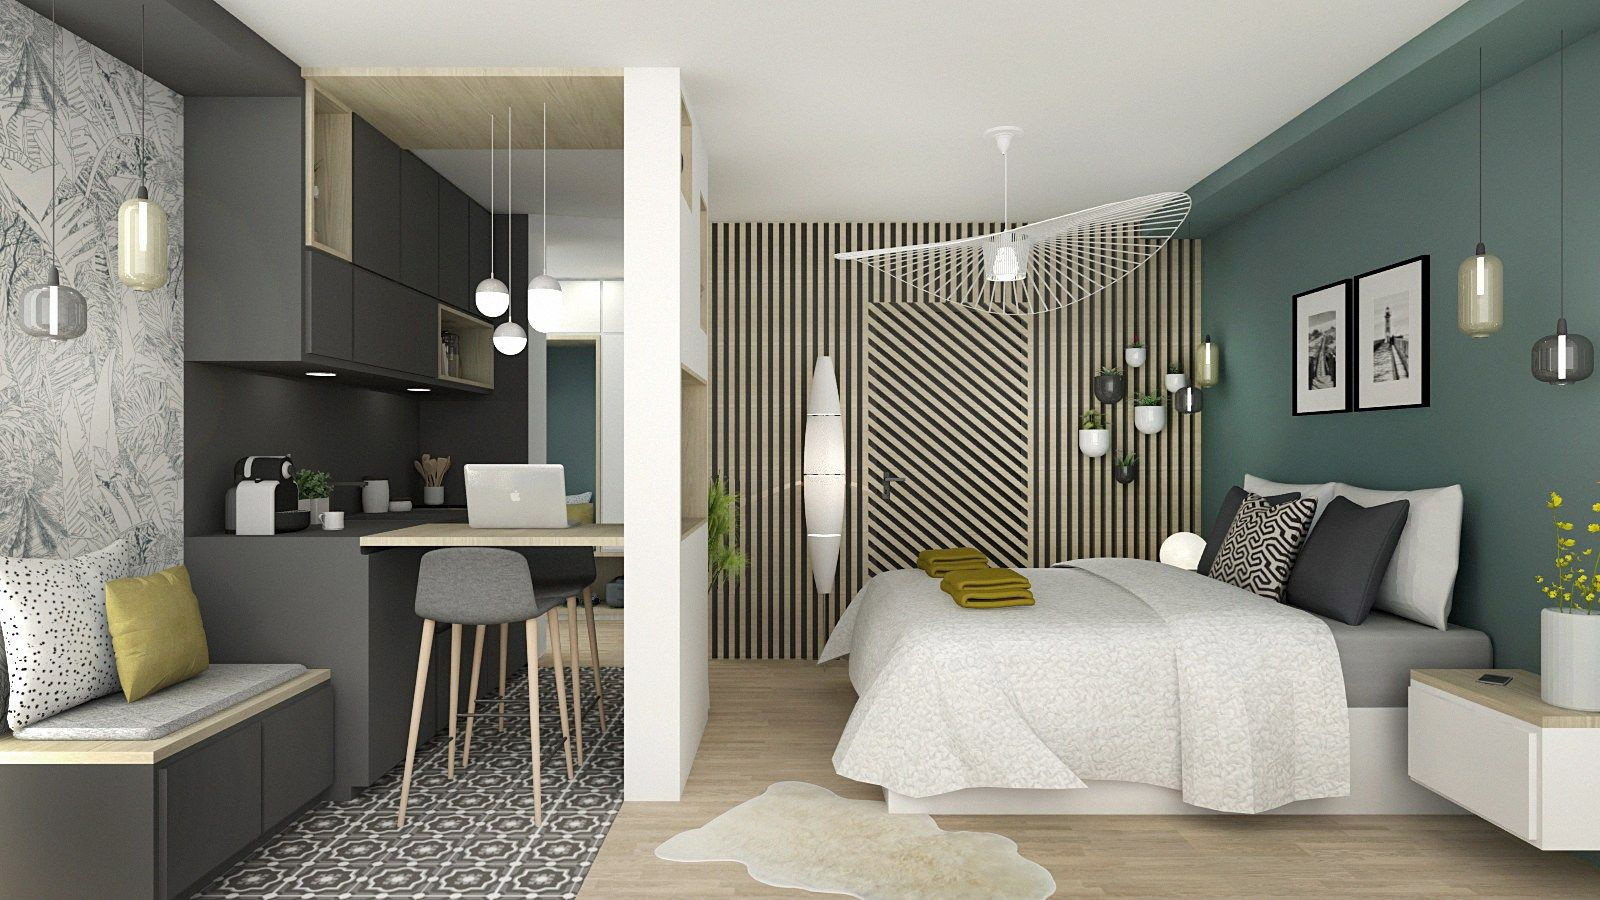 Agence Immobilière Home Staging prestations - architecture, décoration, home staging, lyon